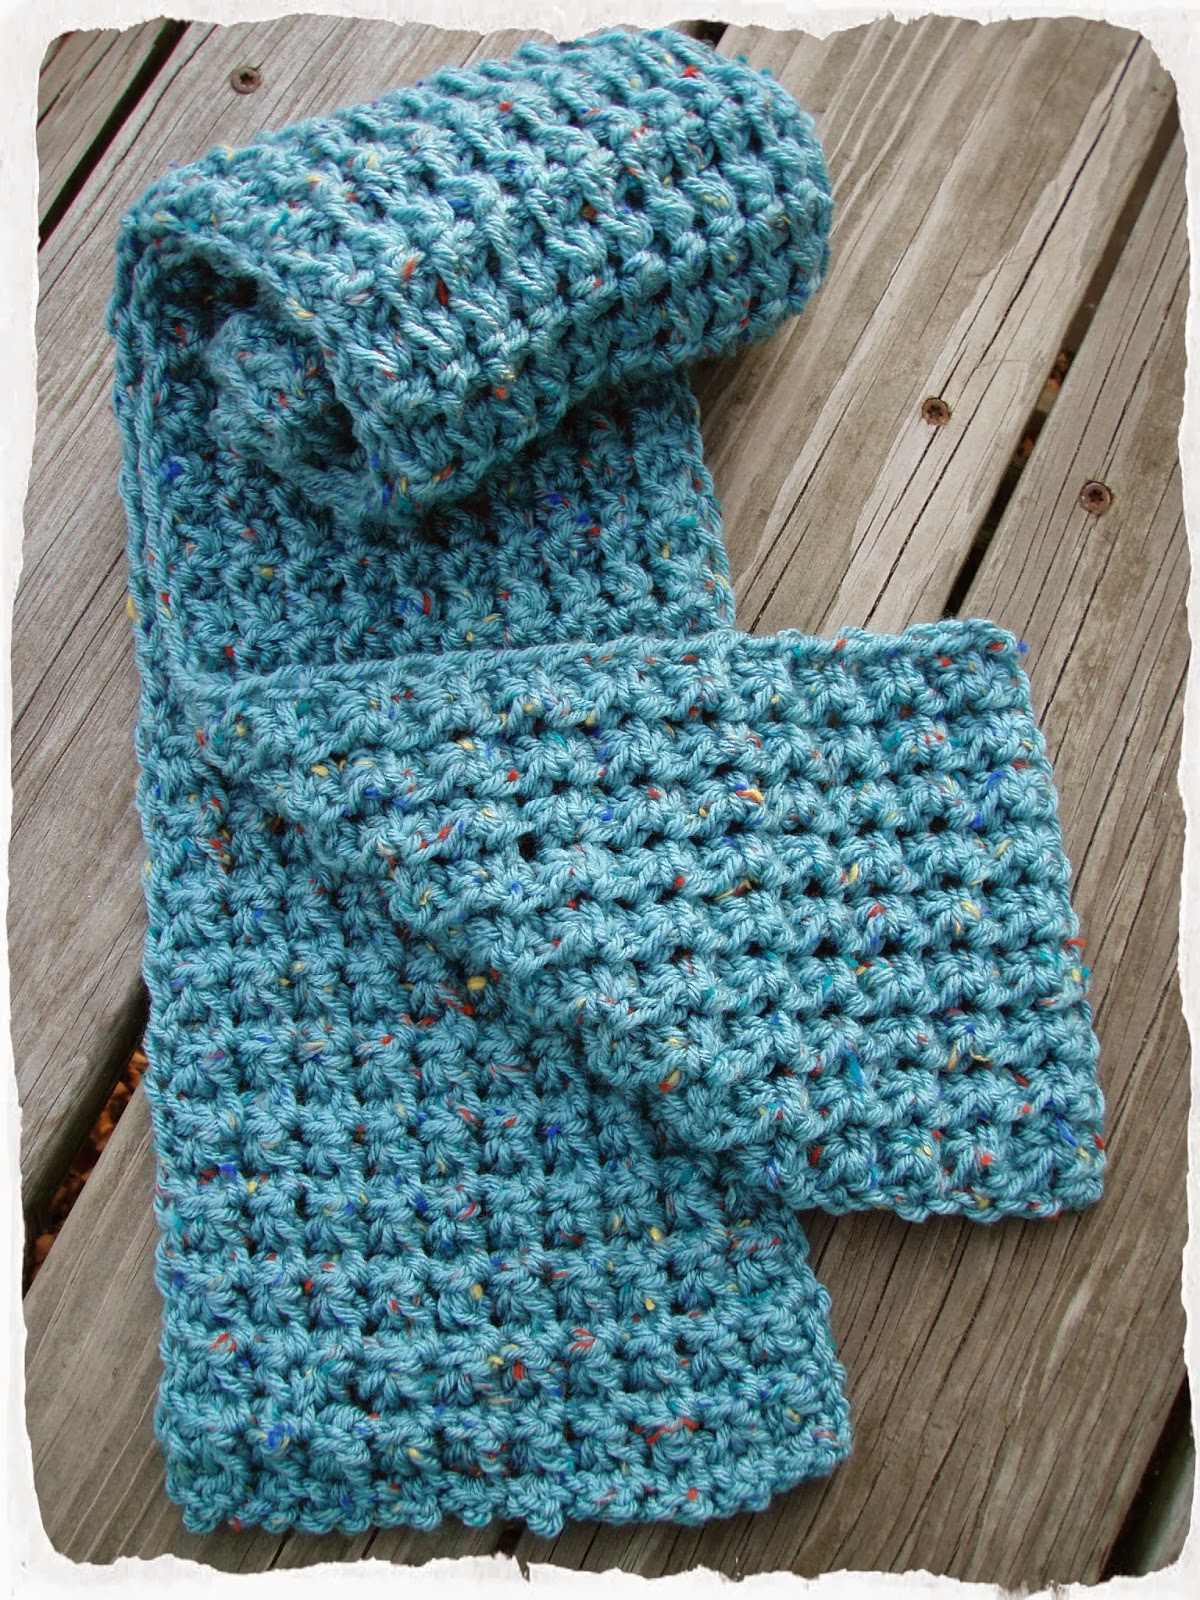 Crochet Patterns Using I Love This Yarn : This Housewife Life: Trinity Stitch Scarf ~ FREE PATTERN